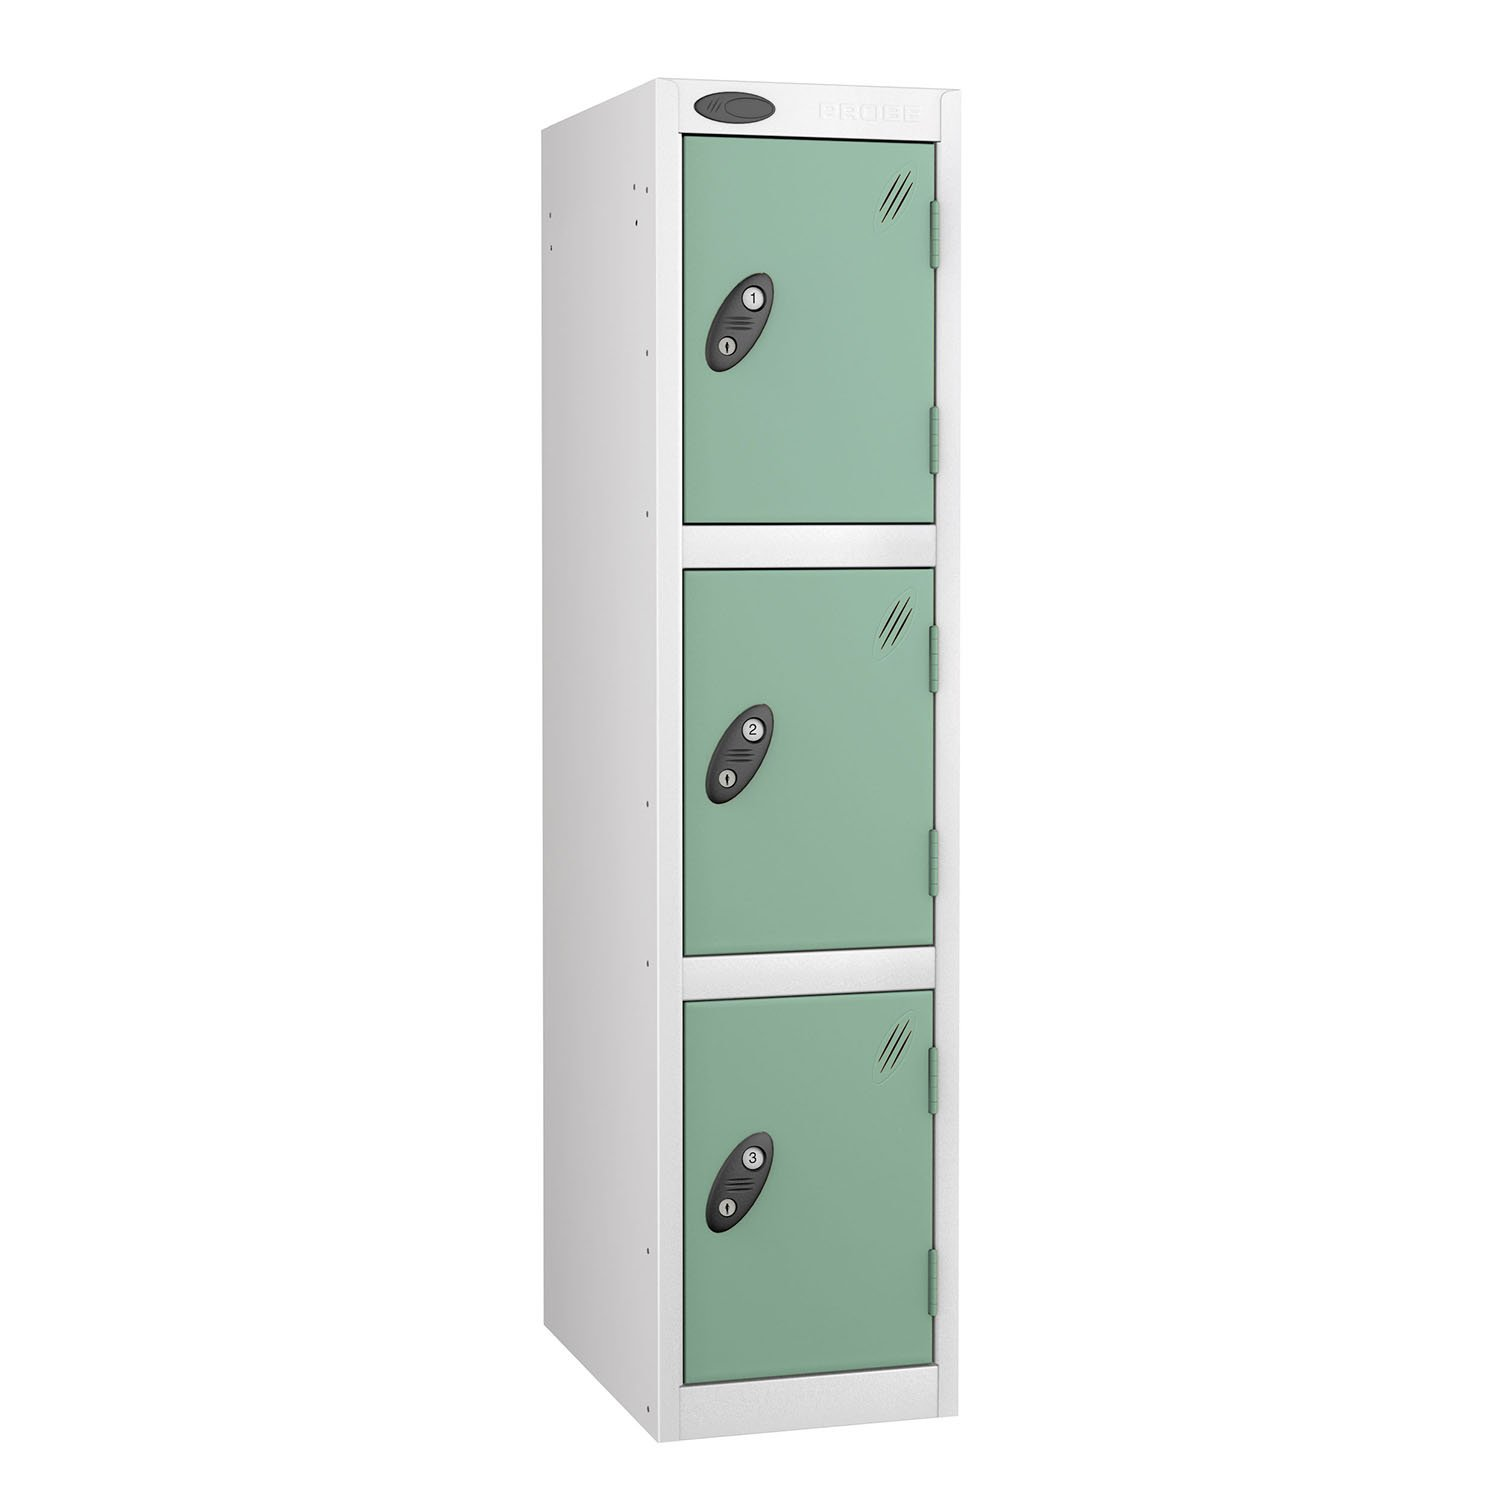 Probe 3 doors low locker in white-jade colour